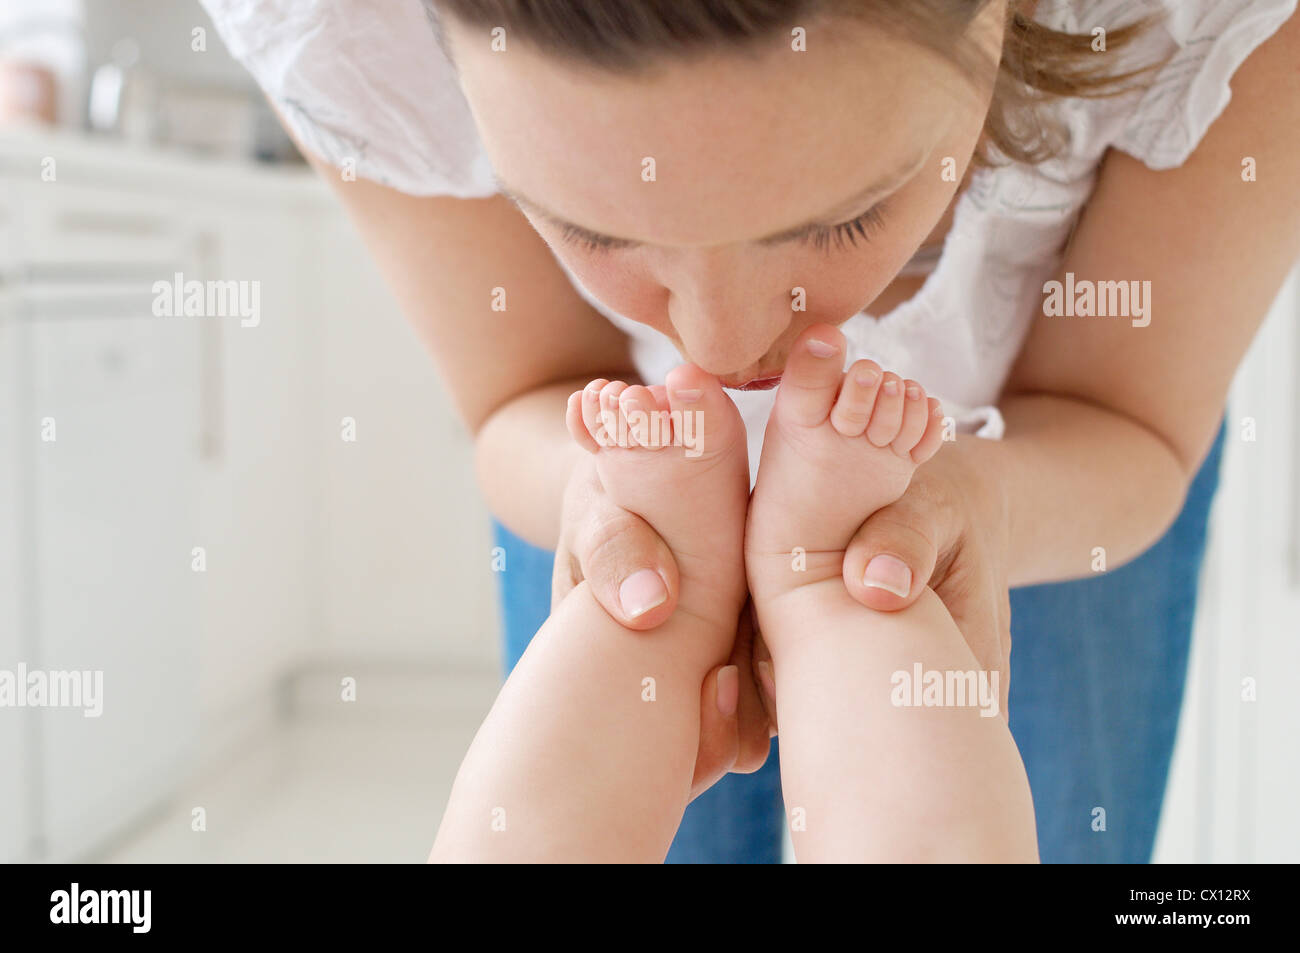 Mother kissing baby's feet Stock Photo